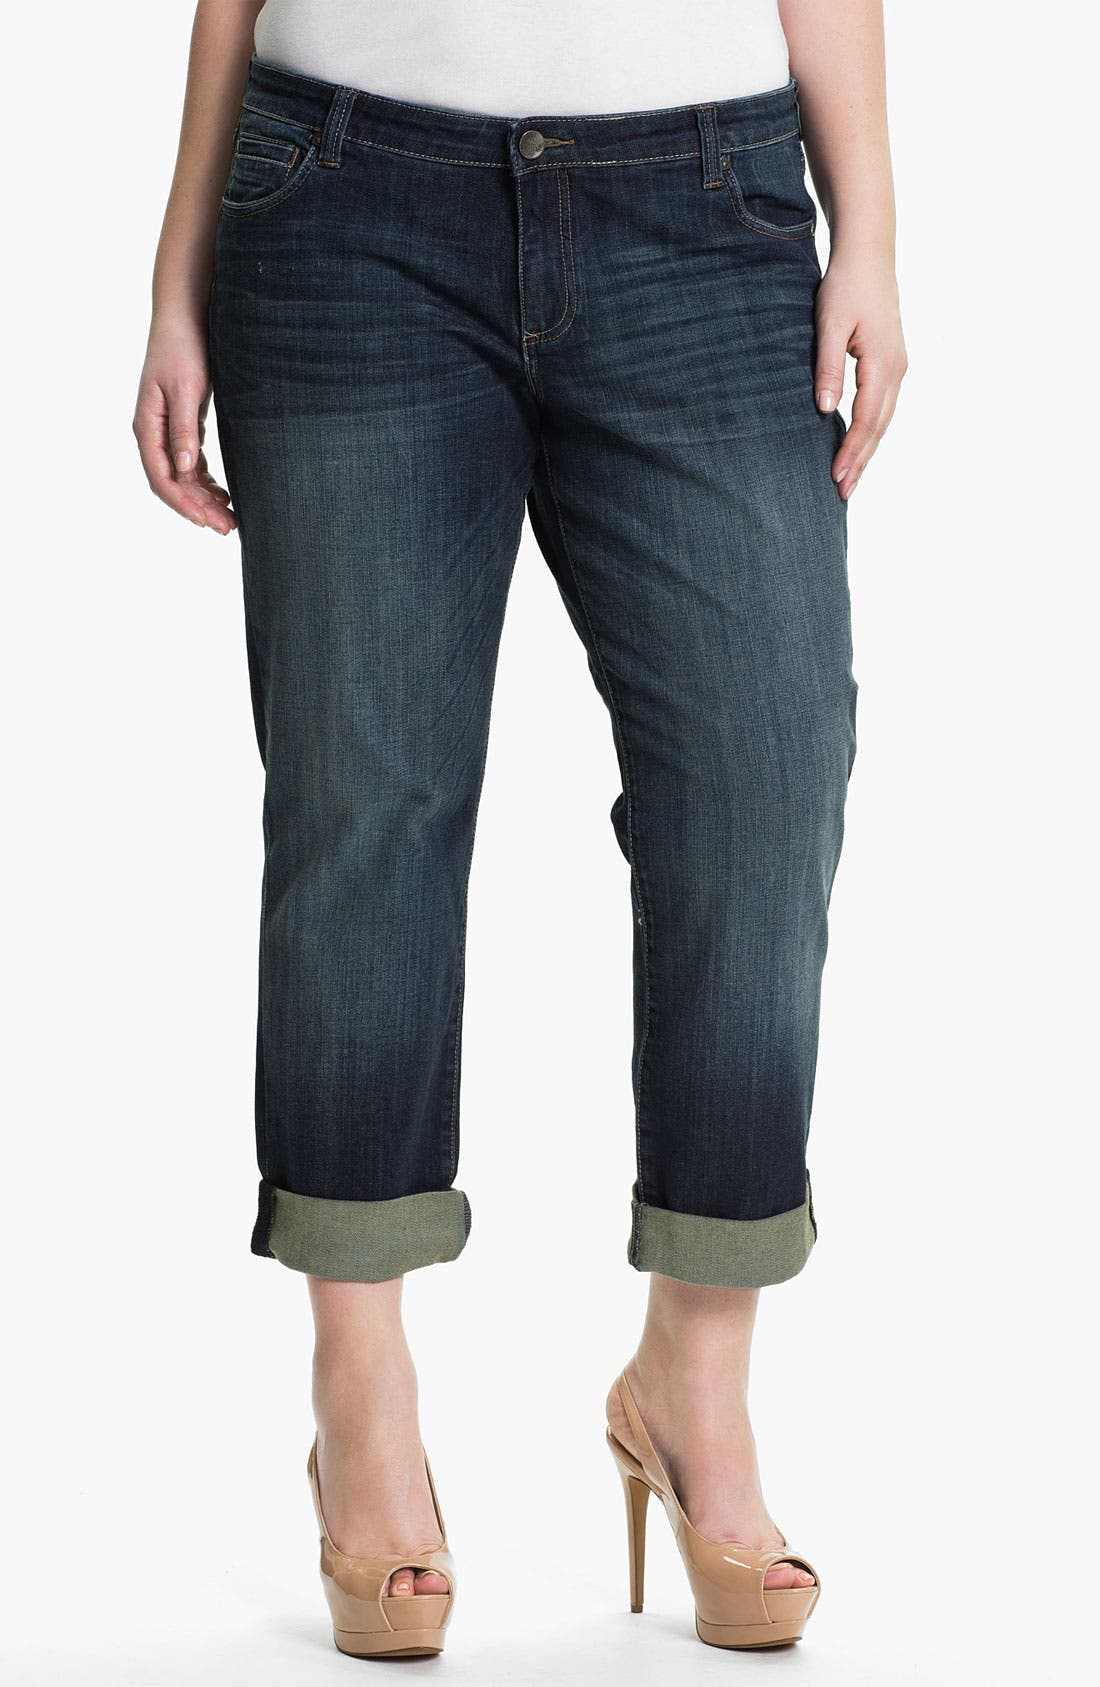 Main Image - KUT from the Kloth 'Catherine' Slim Boyfriend Jeans (Plus Size)